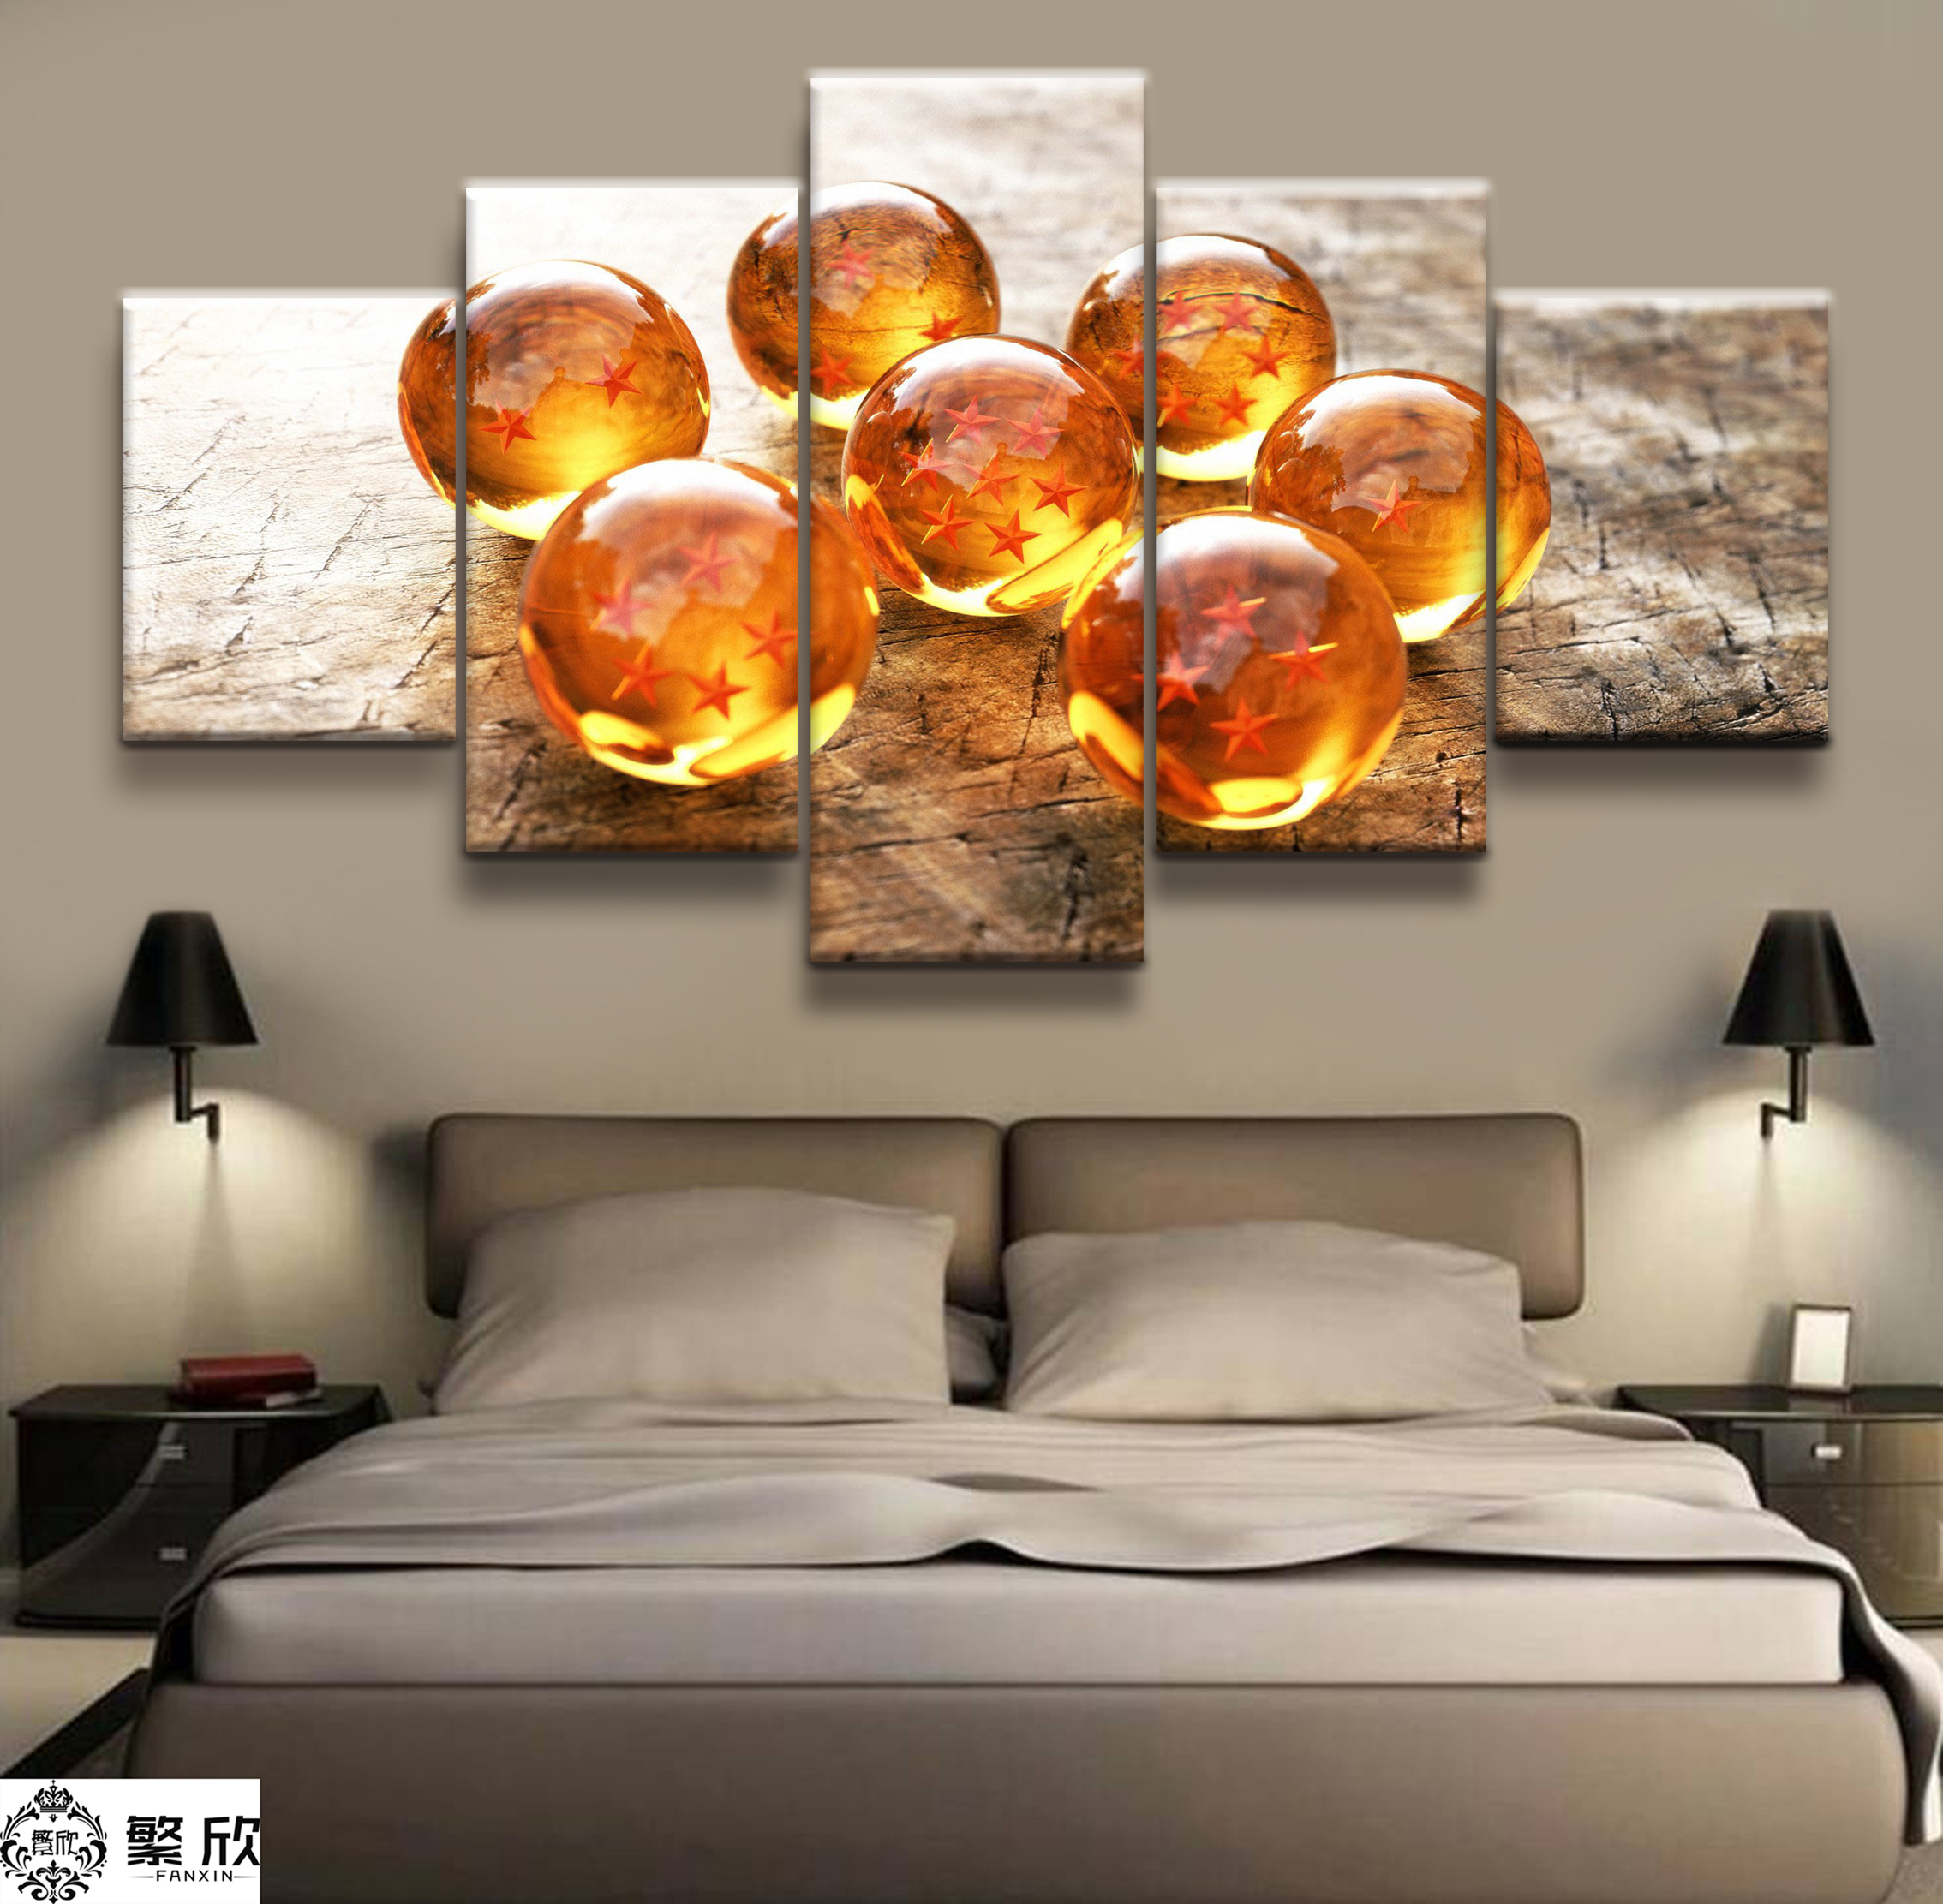 Hot Sales Without Frame 5 Panels Picture Dragon Ball Super Animation Painting Artwork Wall Art Canvas Painting Wholesale in Painting Calligraphy from Home Garden